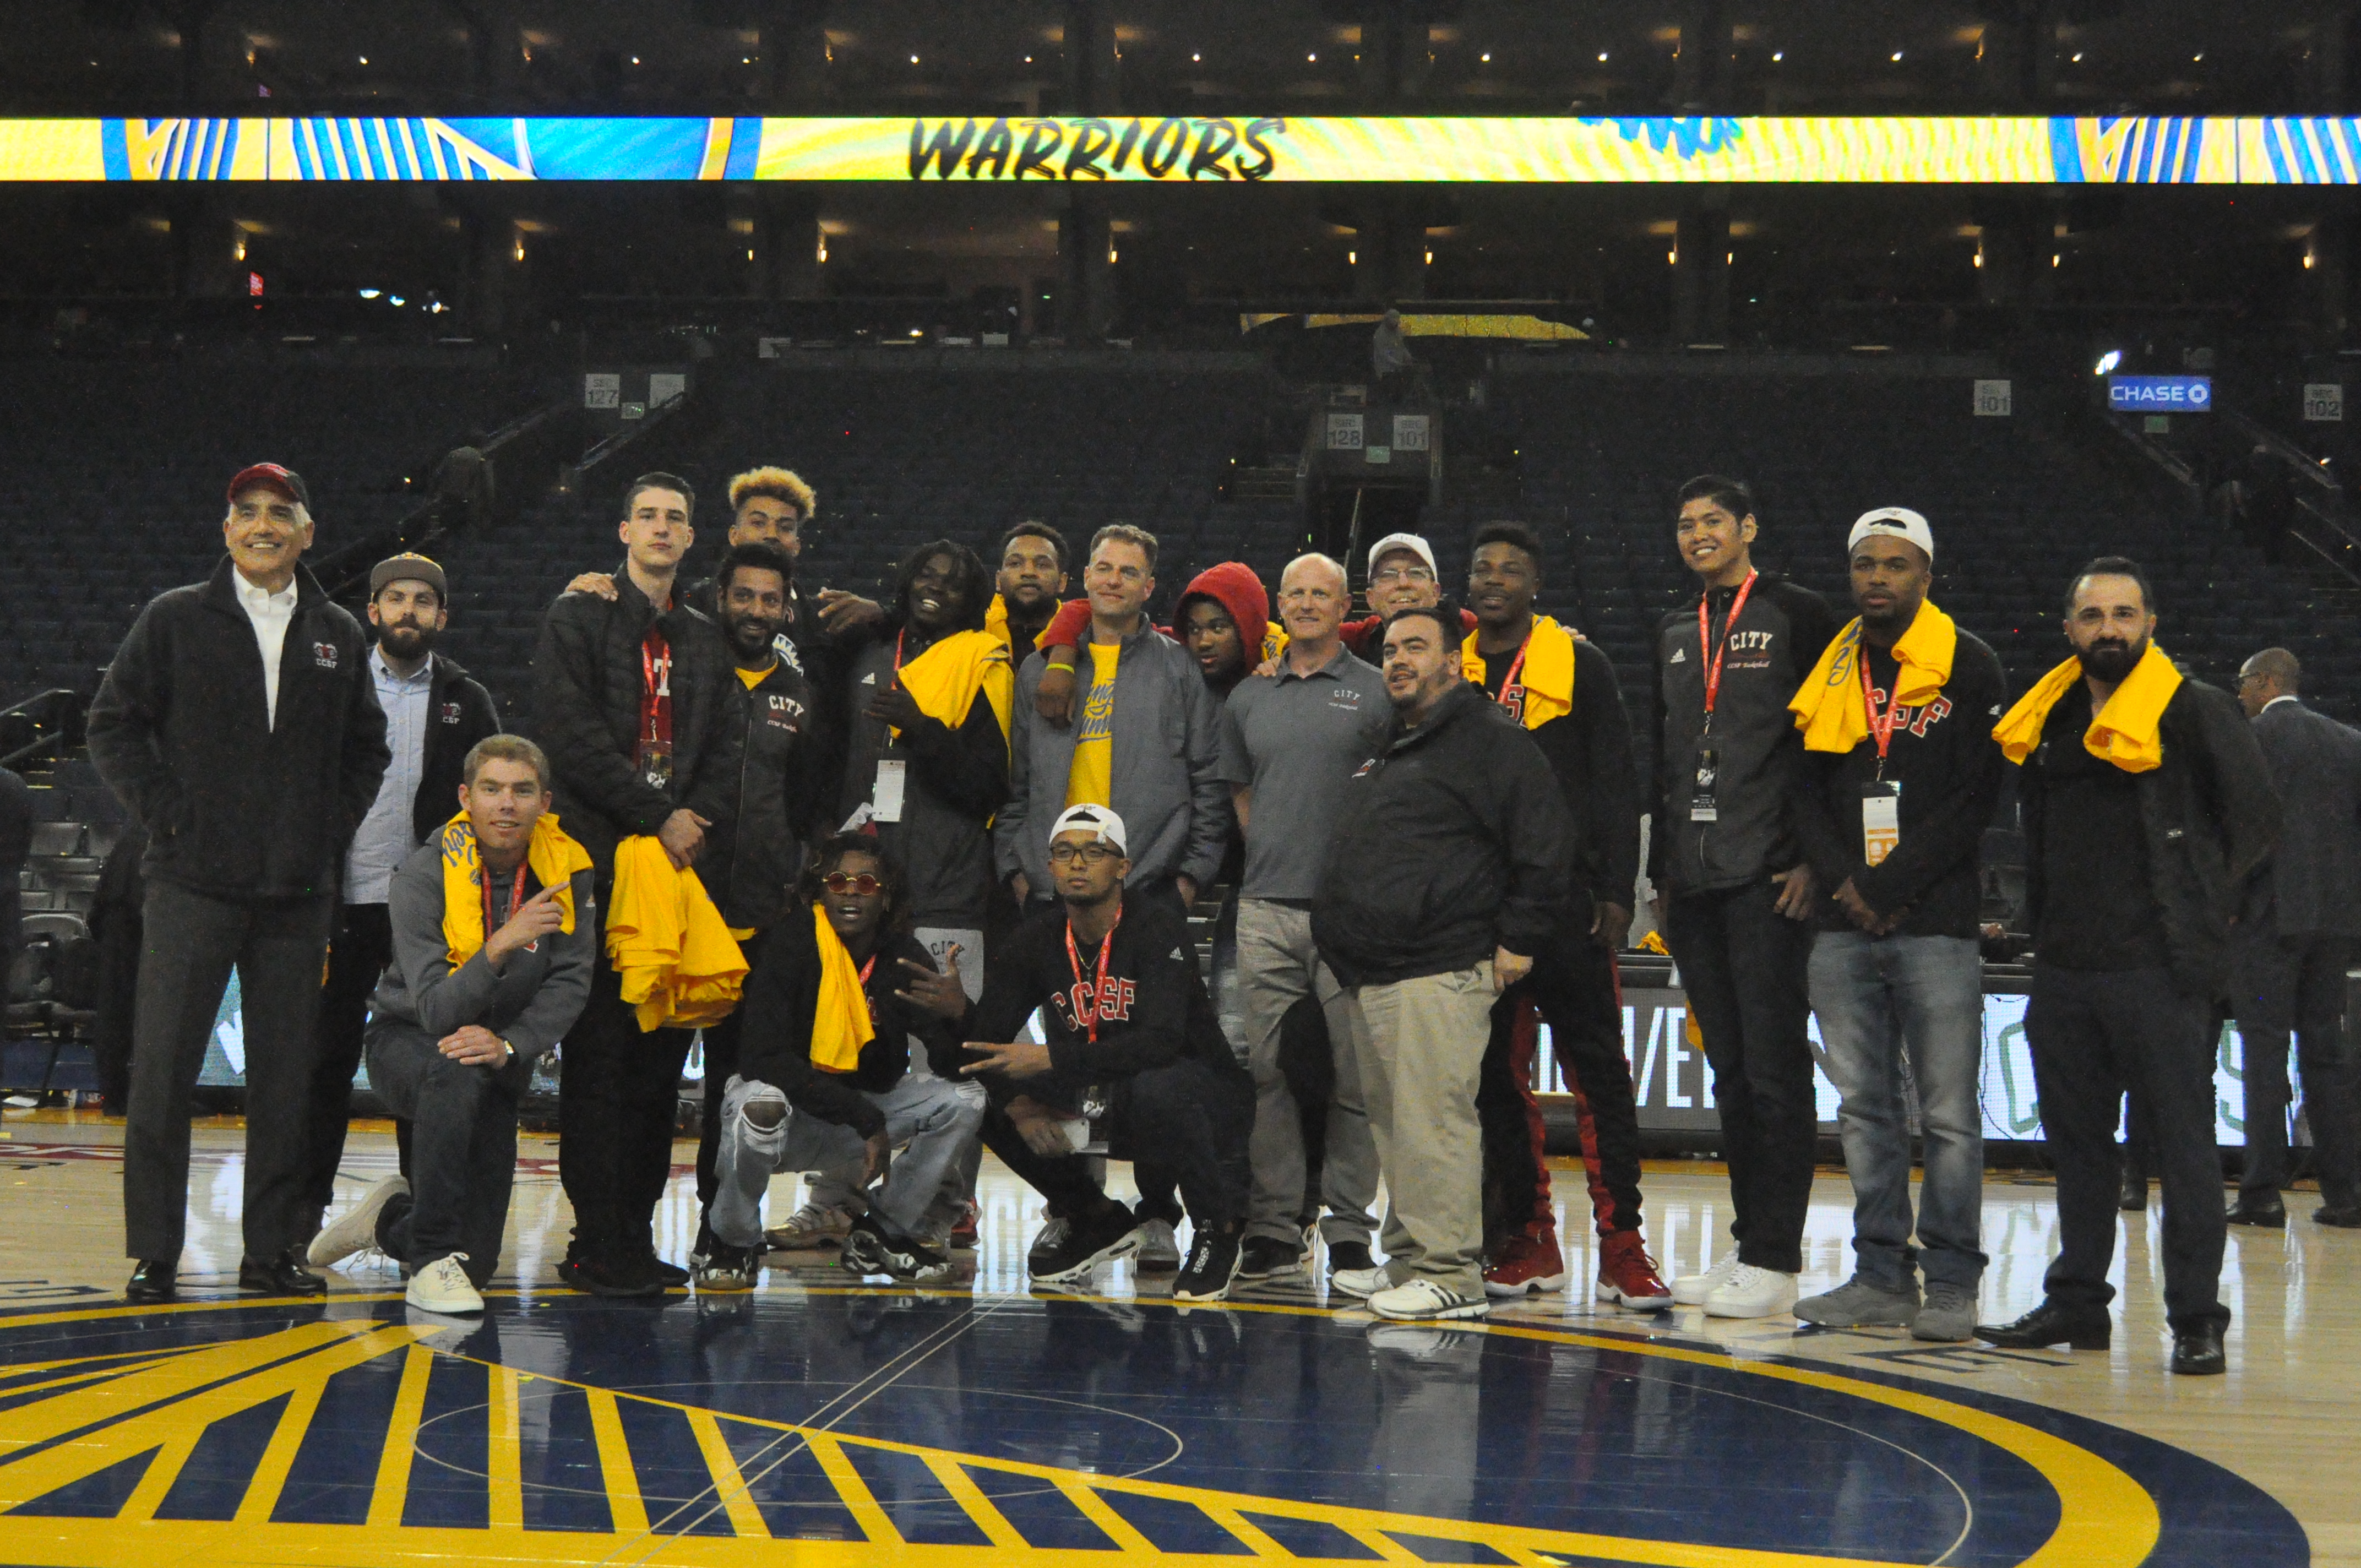 Rams basketball team along with Chancellor Rocha (far left) and Board of Trustee Tom Temprano (right of Rocha) gather one last time center court after Warriors Game 2 playoff match-up against Spurs on April 16, 2018.  Photo by Peter J. Suter/The Guardsman.